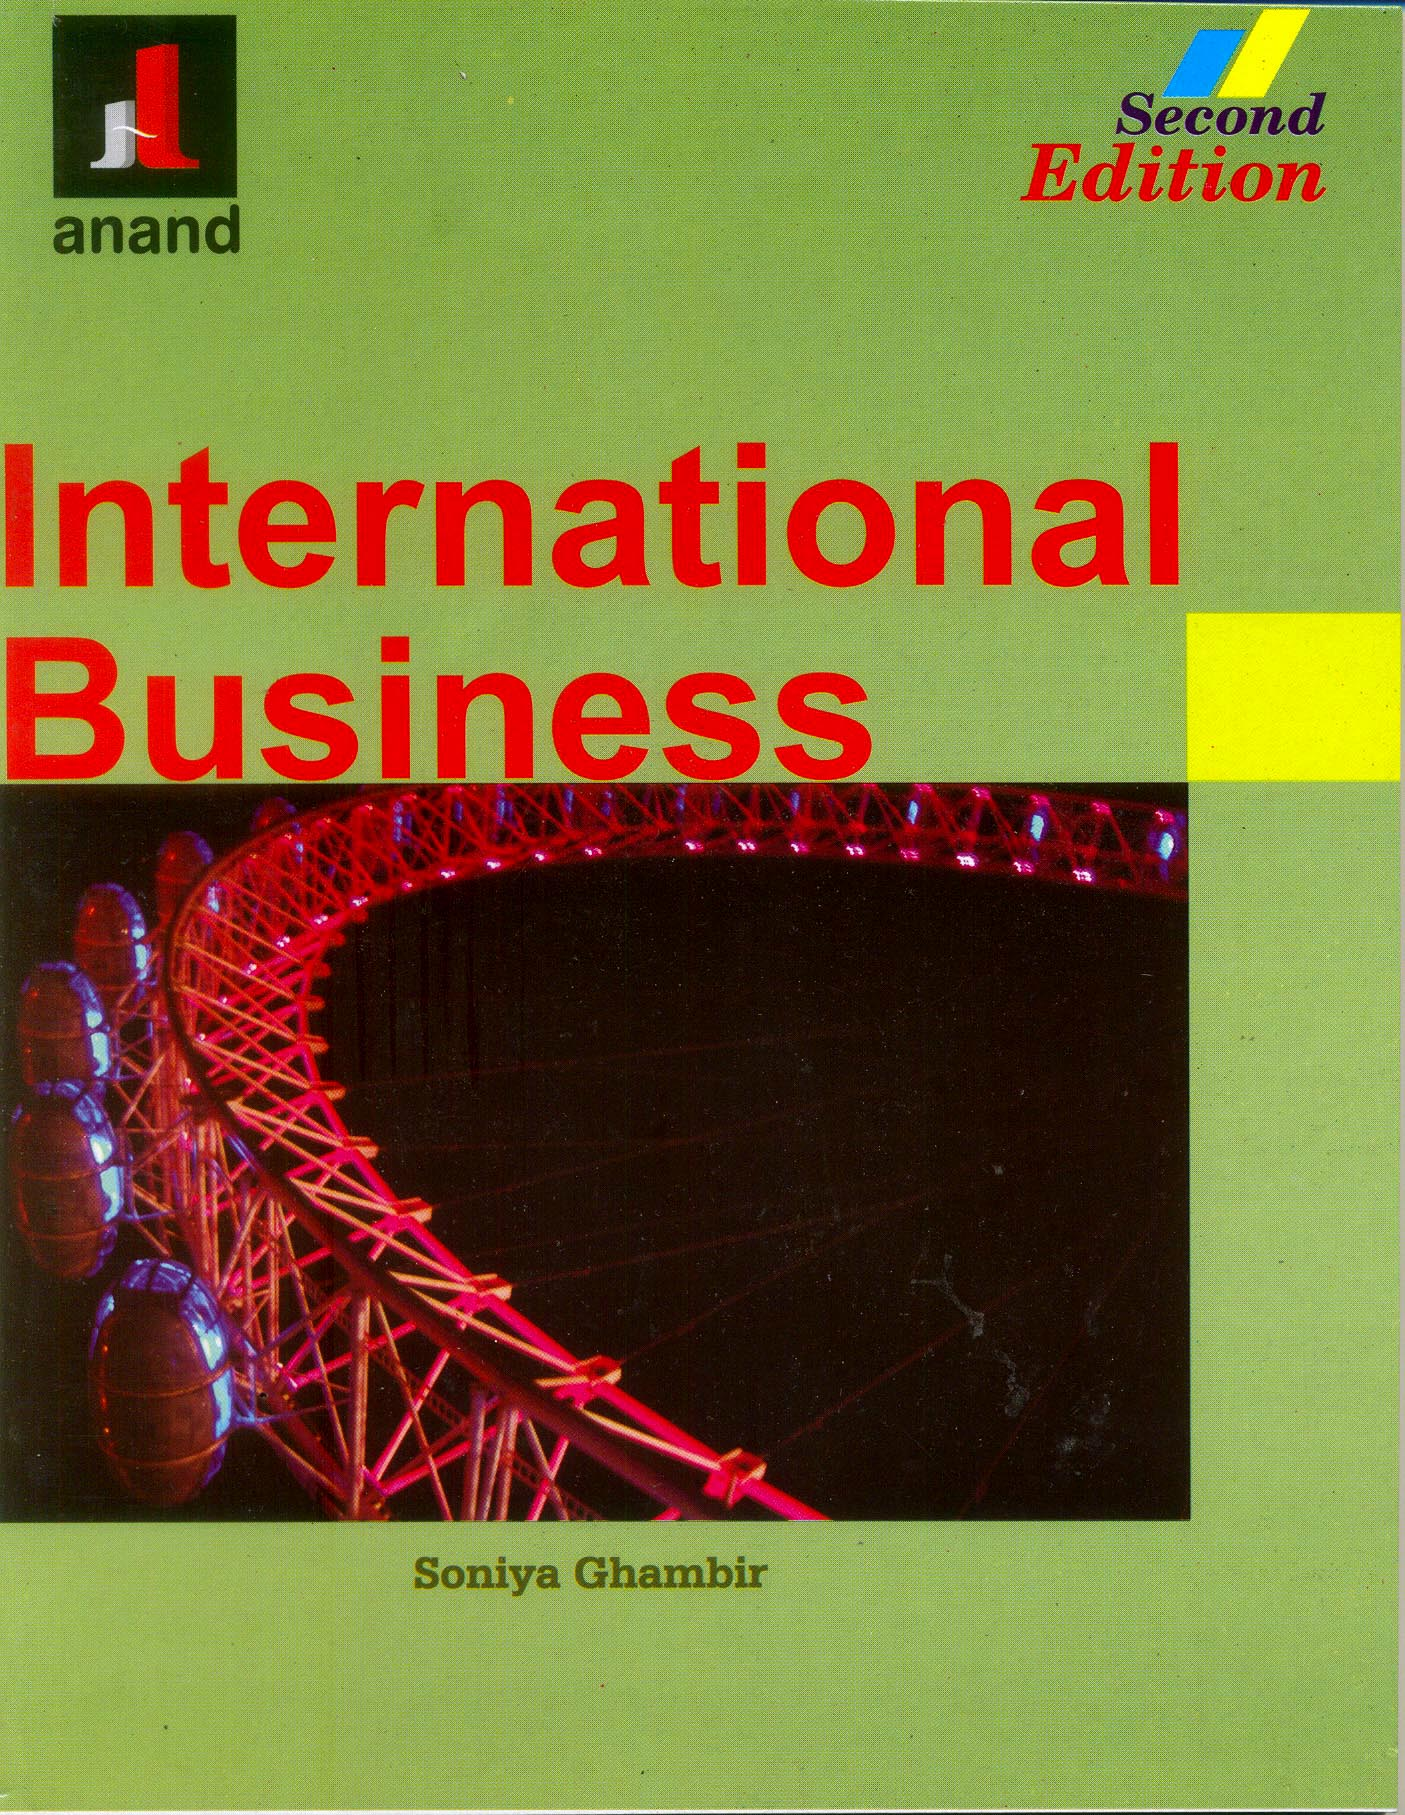 301 International Business